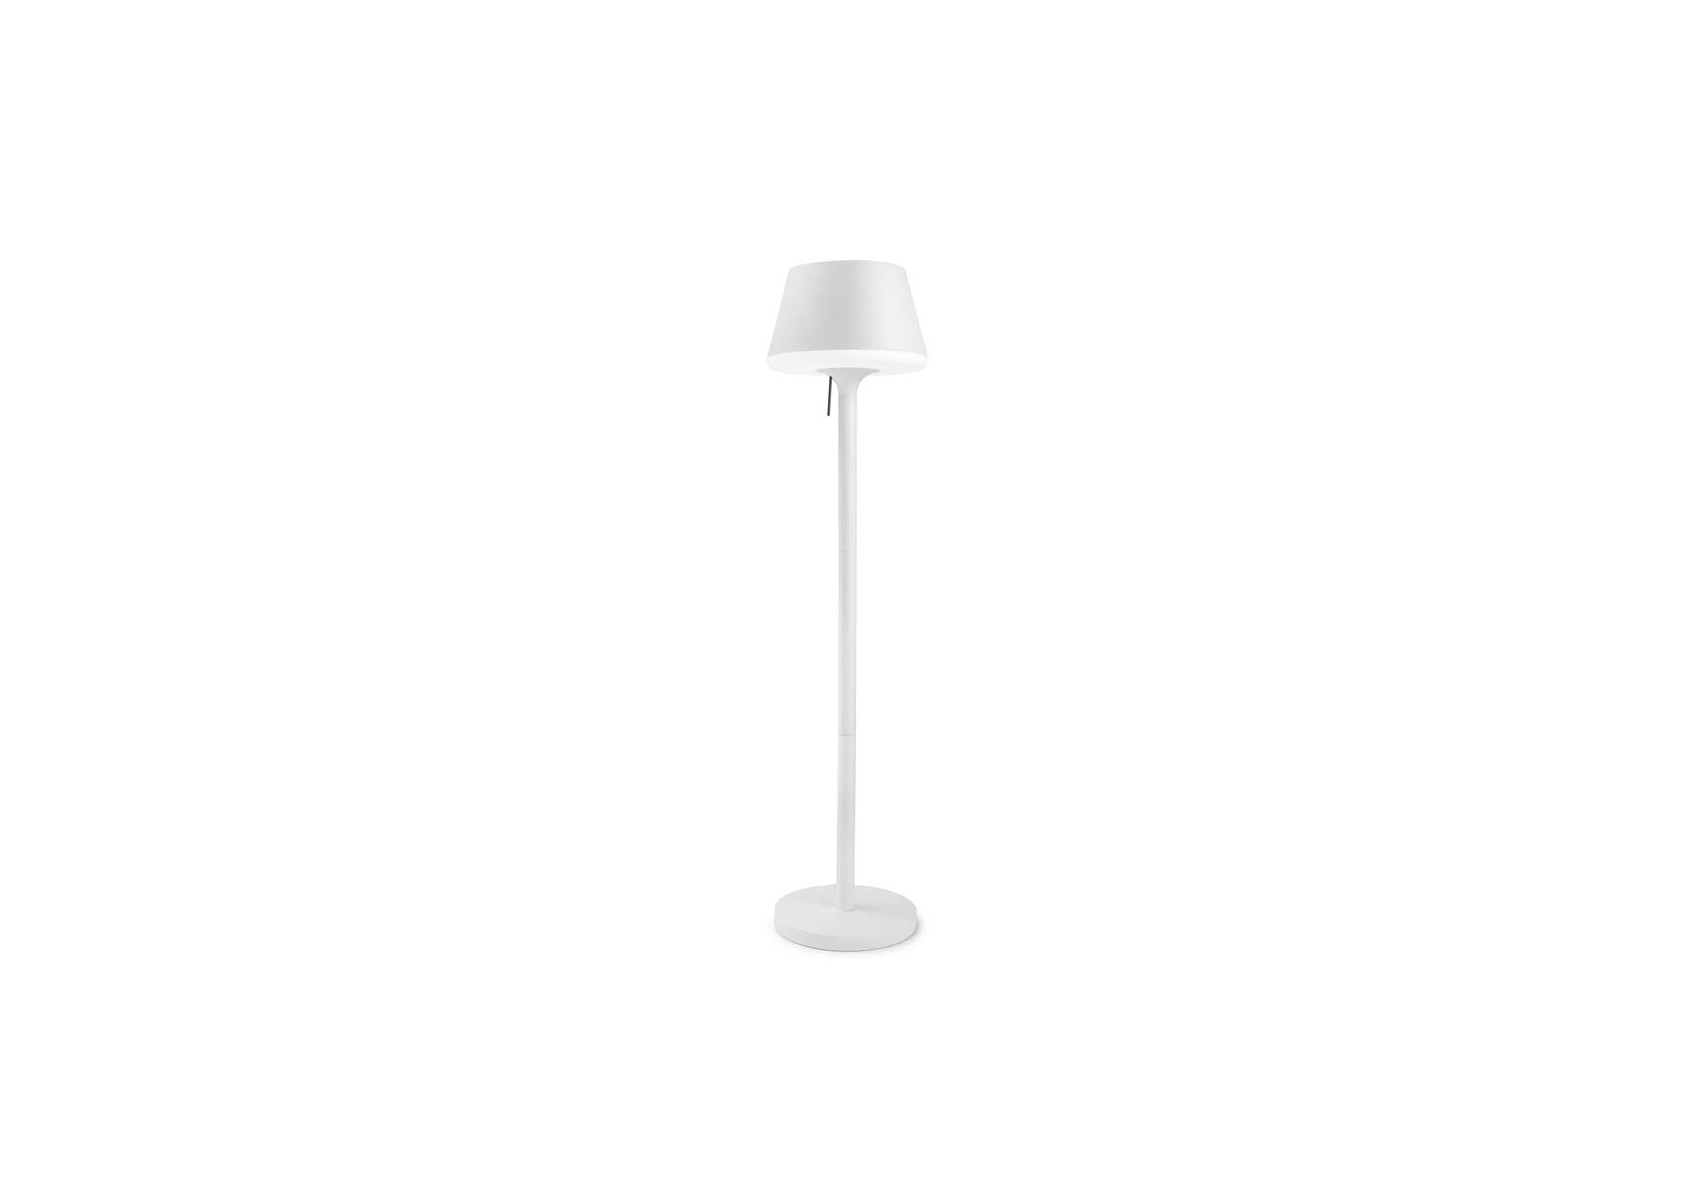 lampadaire d 39 ext rieur moonlight disponible en blanc ou noir leds c4. Black Bedroom Furniture Sets. Home Design Ideas